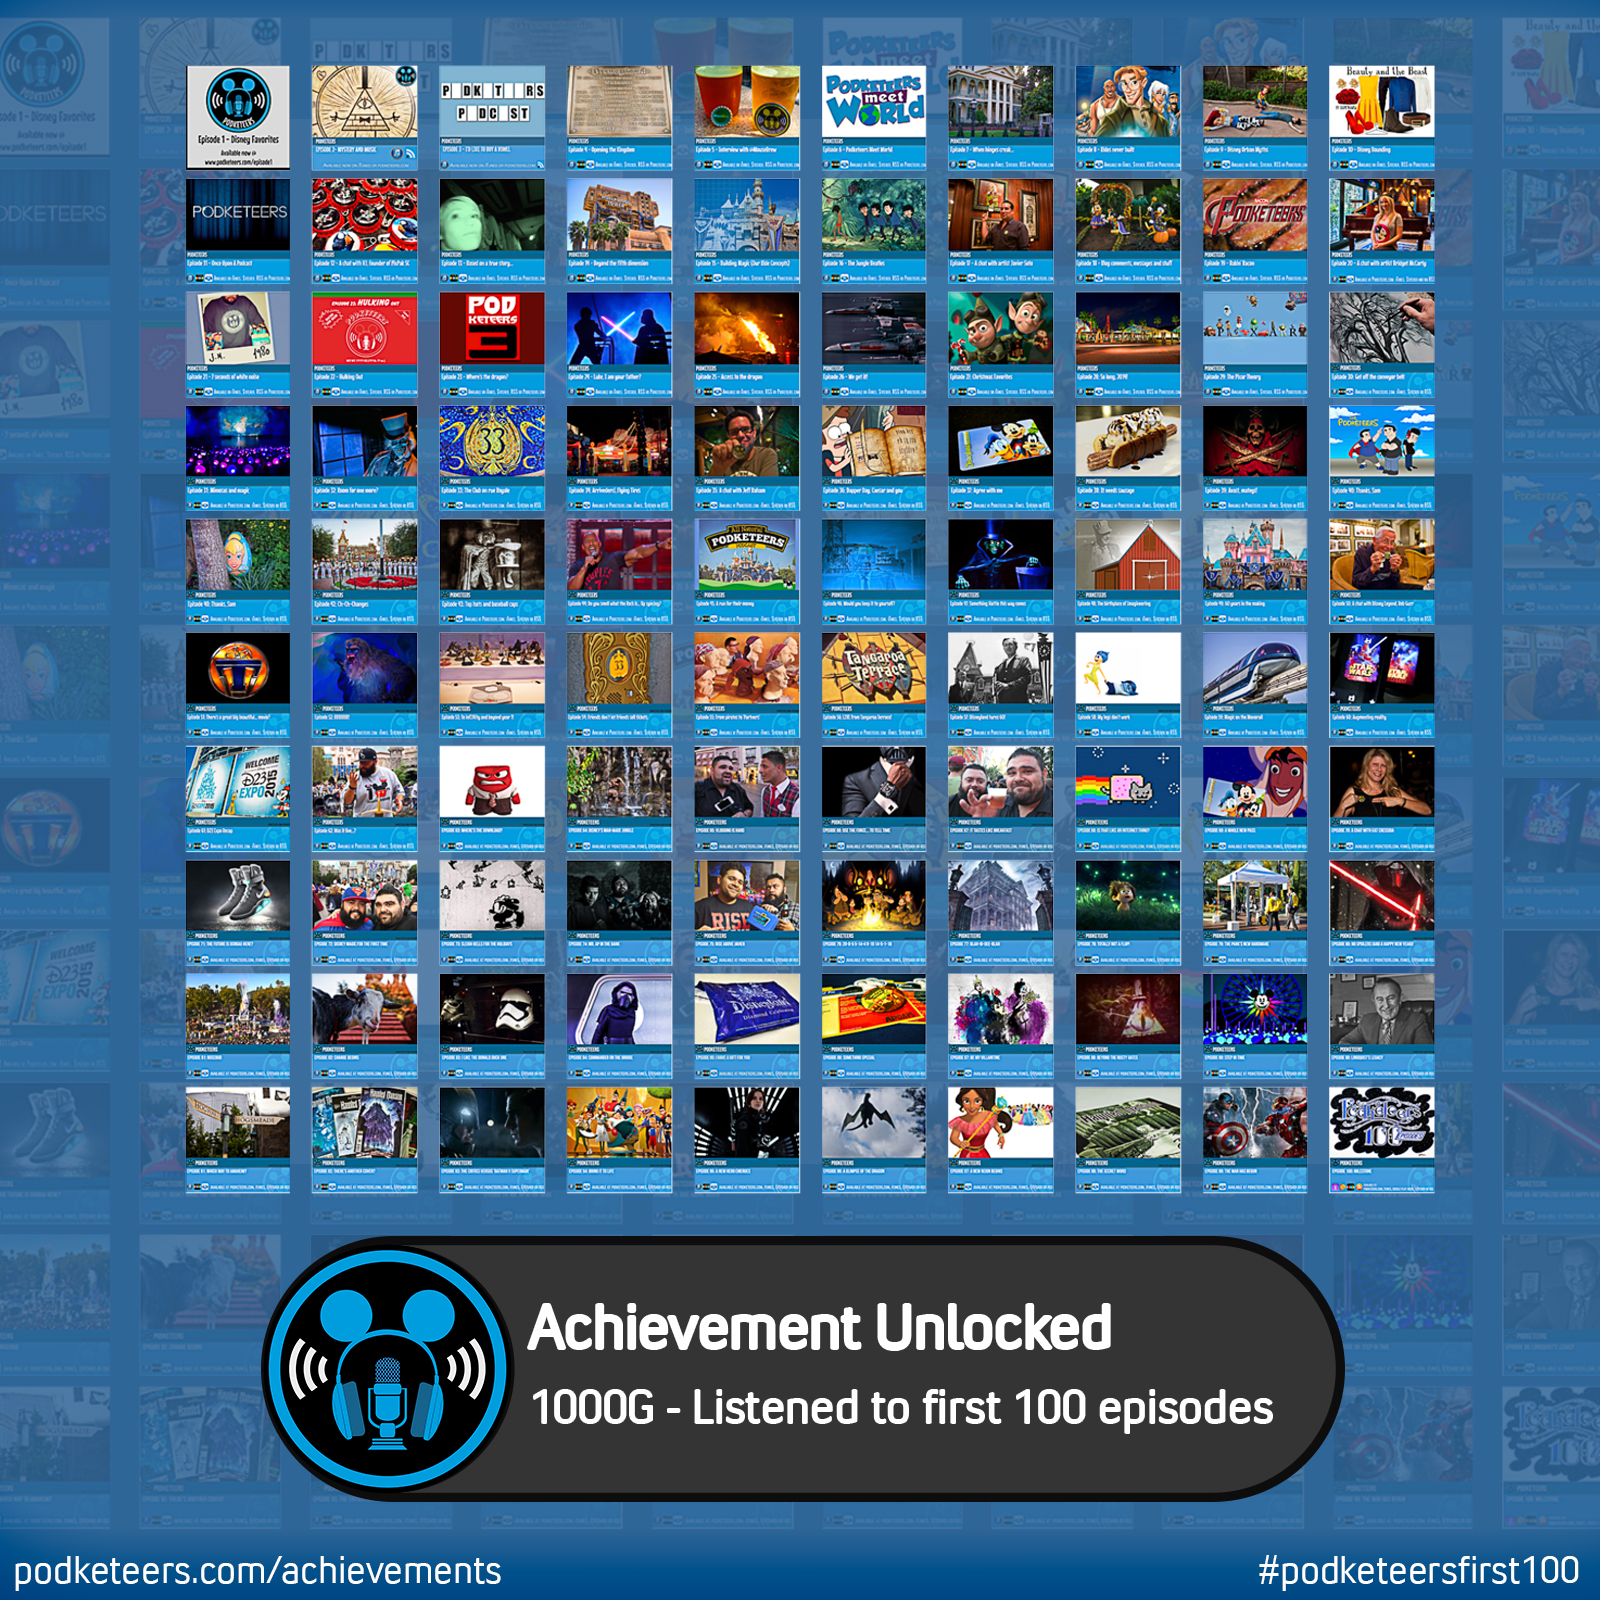 Listened to first 100 episodes! #podketeersfirst100